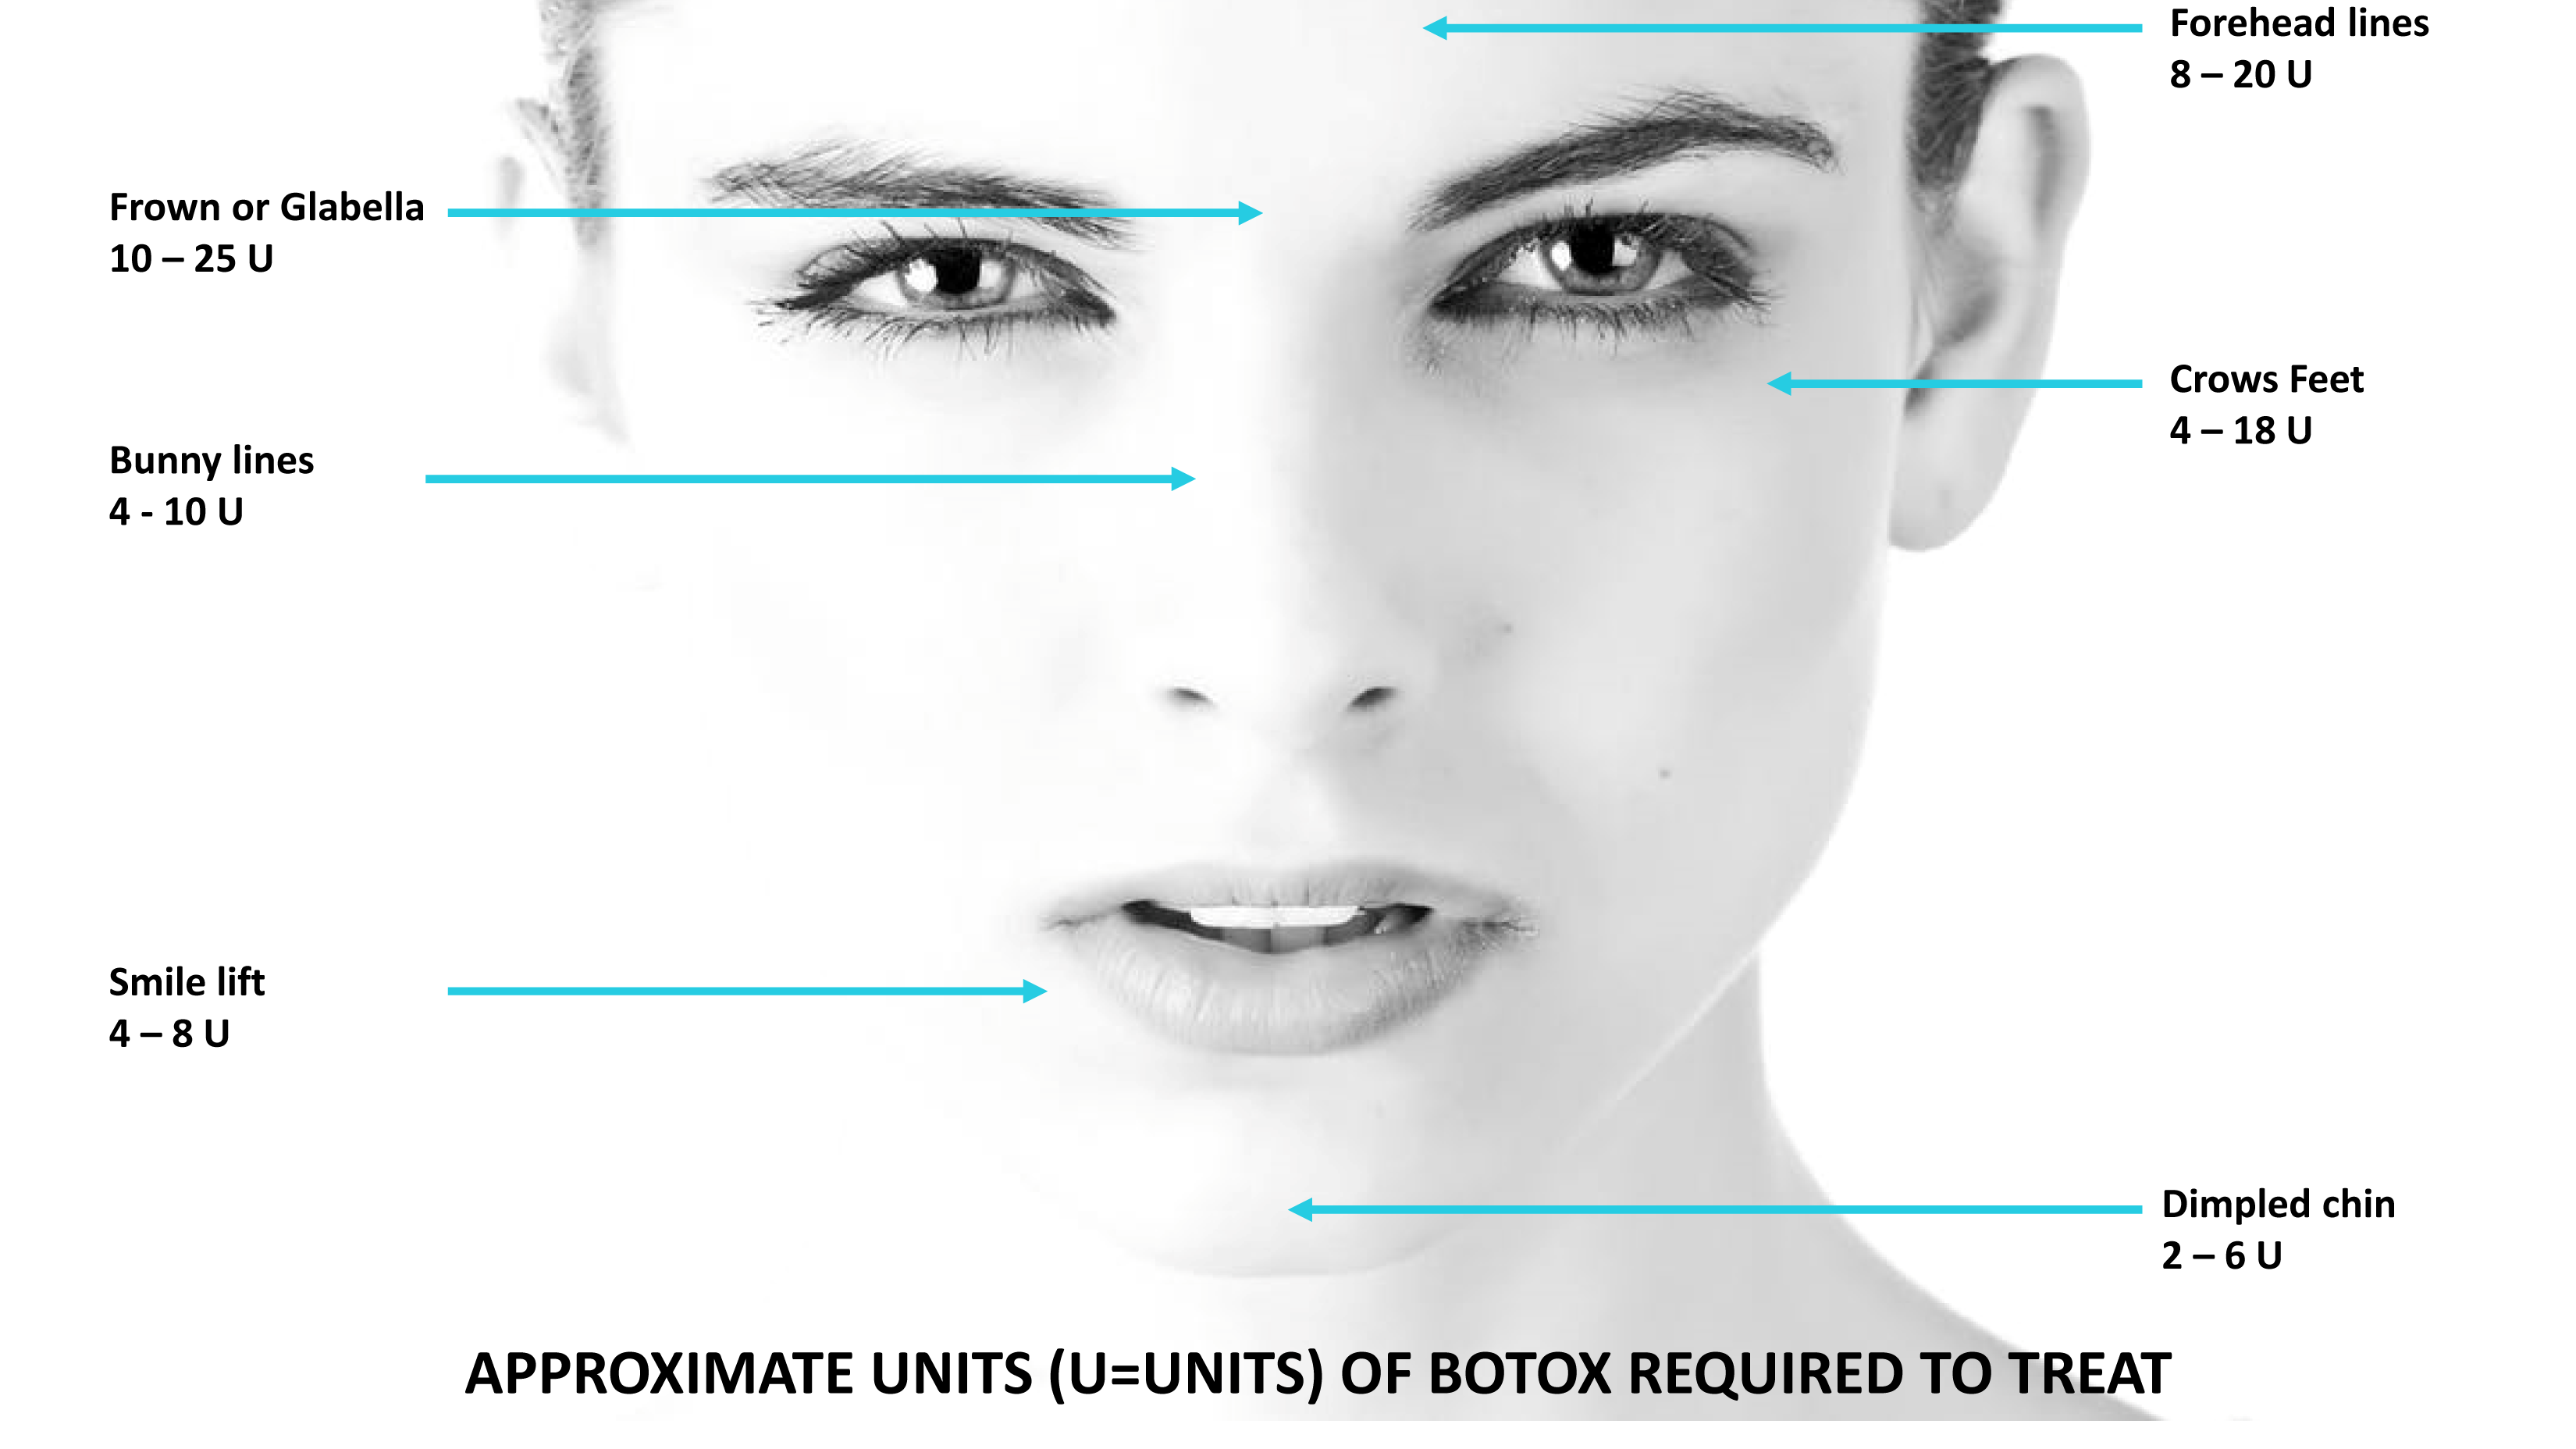 Diagram shows common areas of the face that are treated for Botox, namely; Frown or Glabella (10-25 units), Bunny Lines (4-10 units), Smile Lift (4-8 units), Dimpled Chin (2-6 units), Crowns Feet (4-18 units), Forehead Lines (8-20 units).